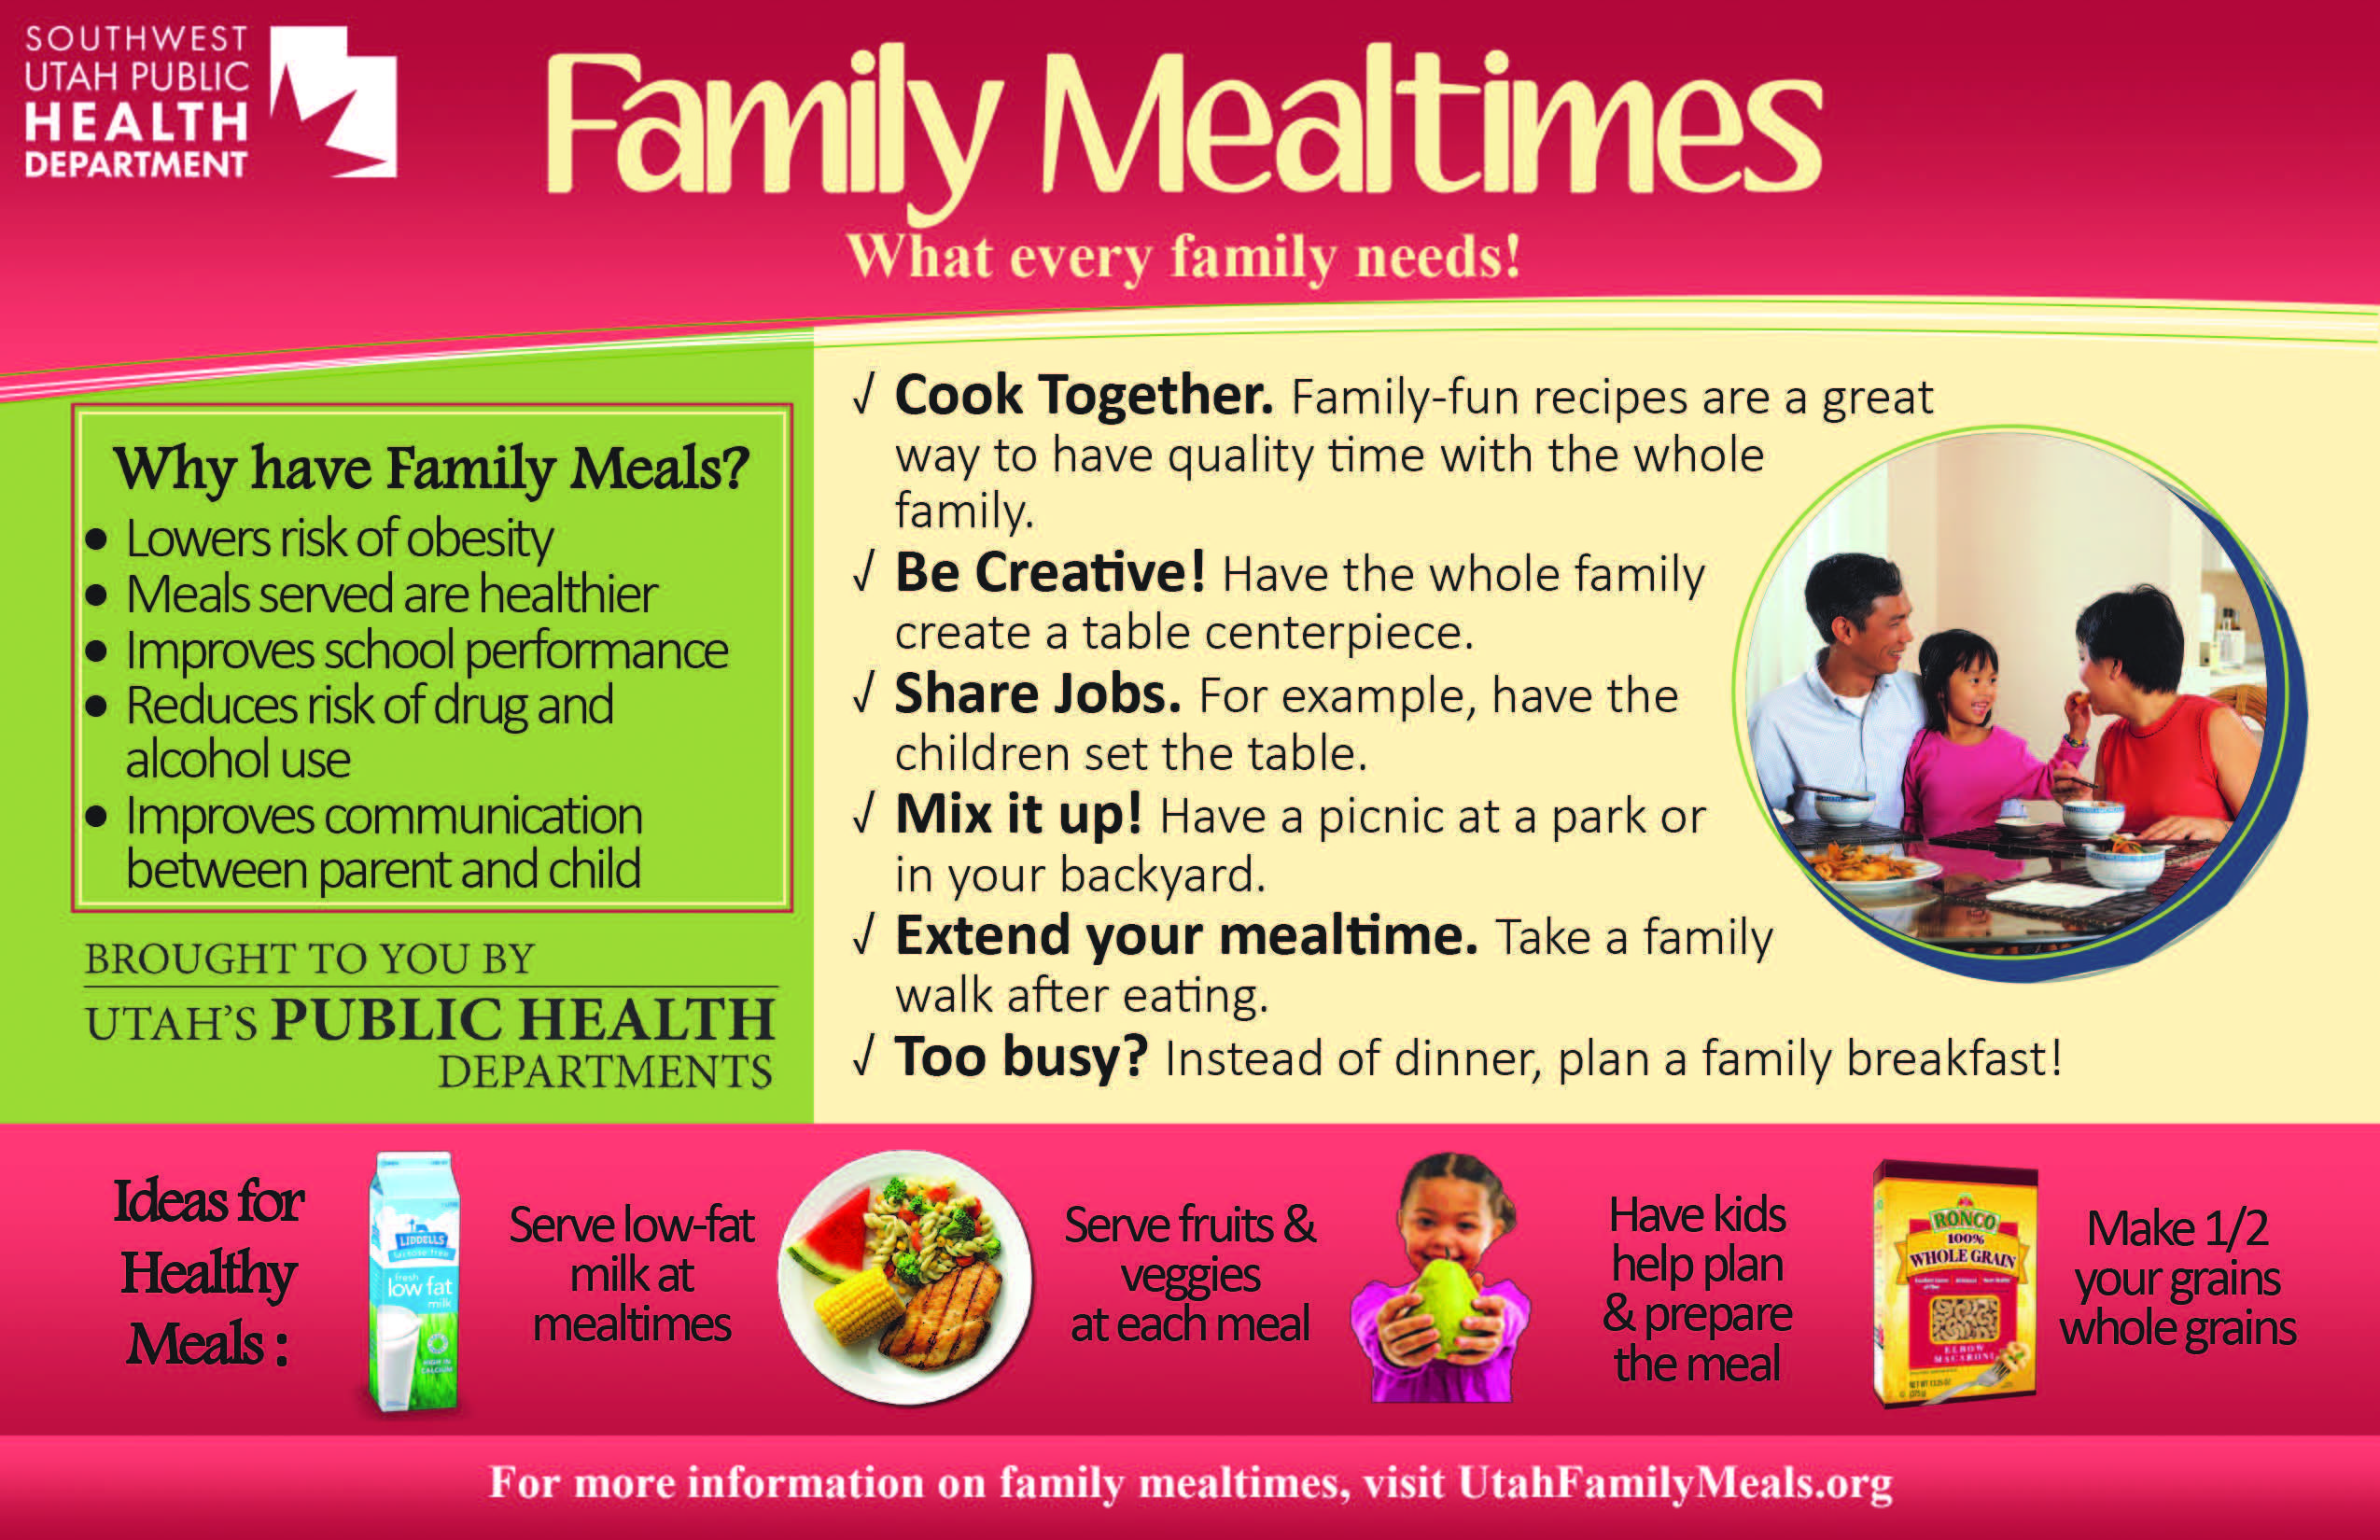 Family Mealtime Ideas Family Mealtime Meal Time Cooking Together